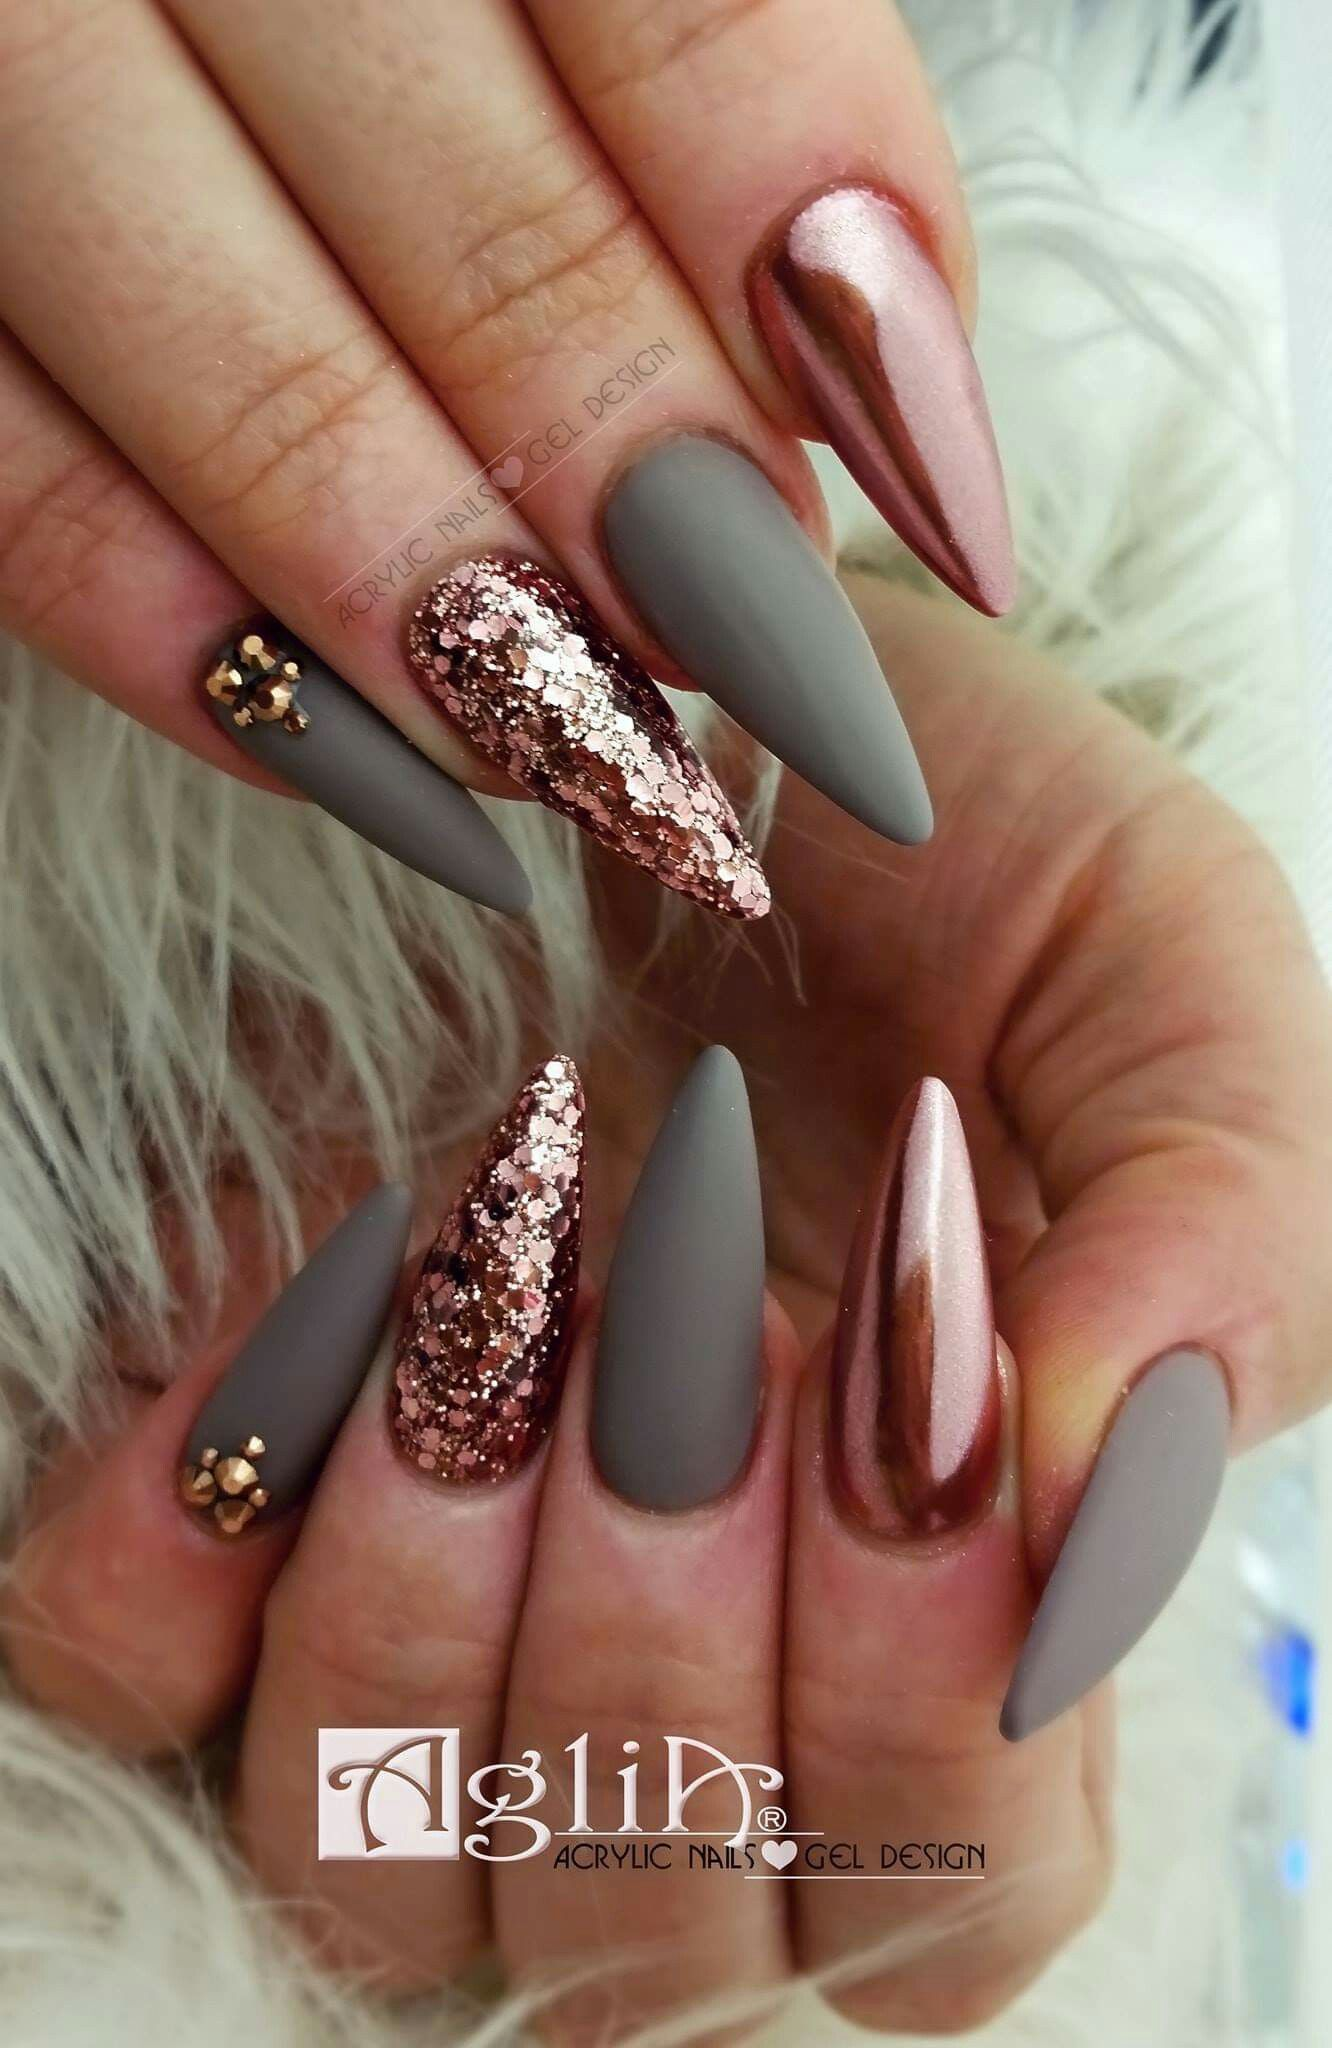 Acrylic Nails Gel Design Matte Nails Chrome Rose Gold Nehty